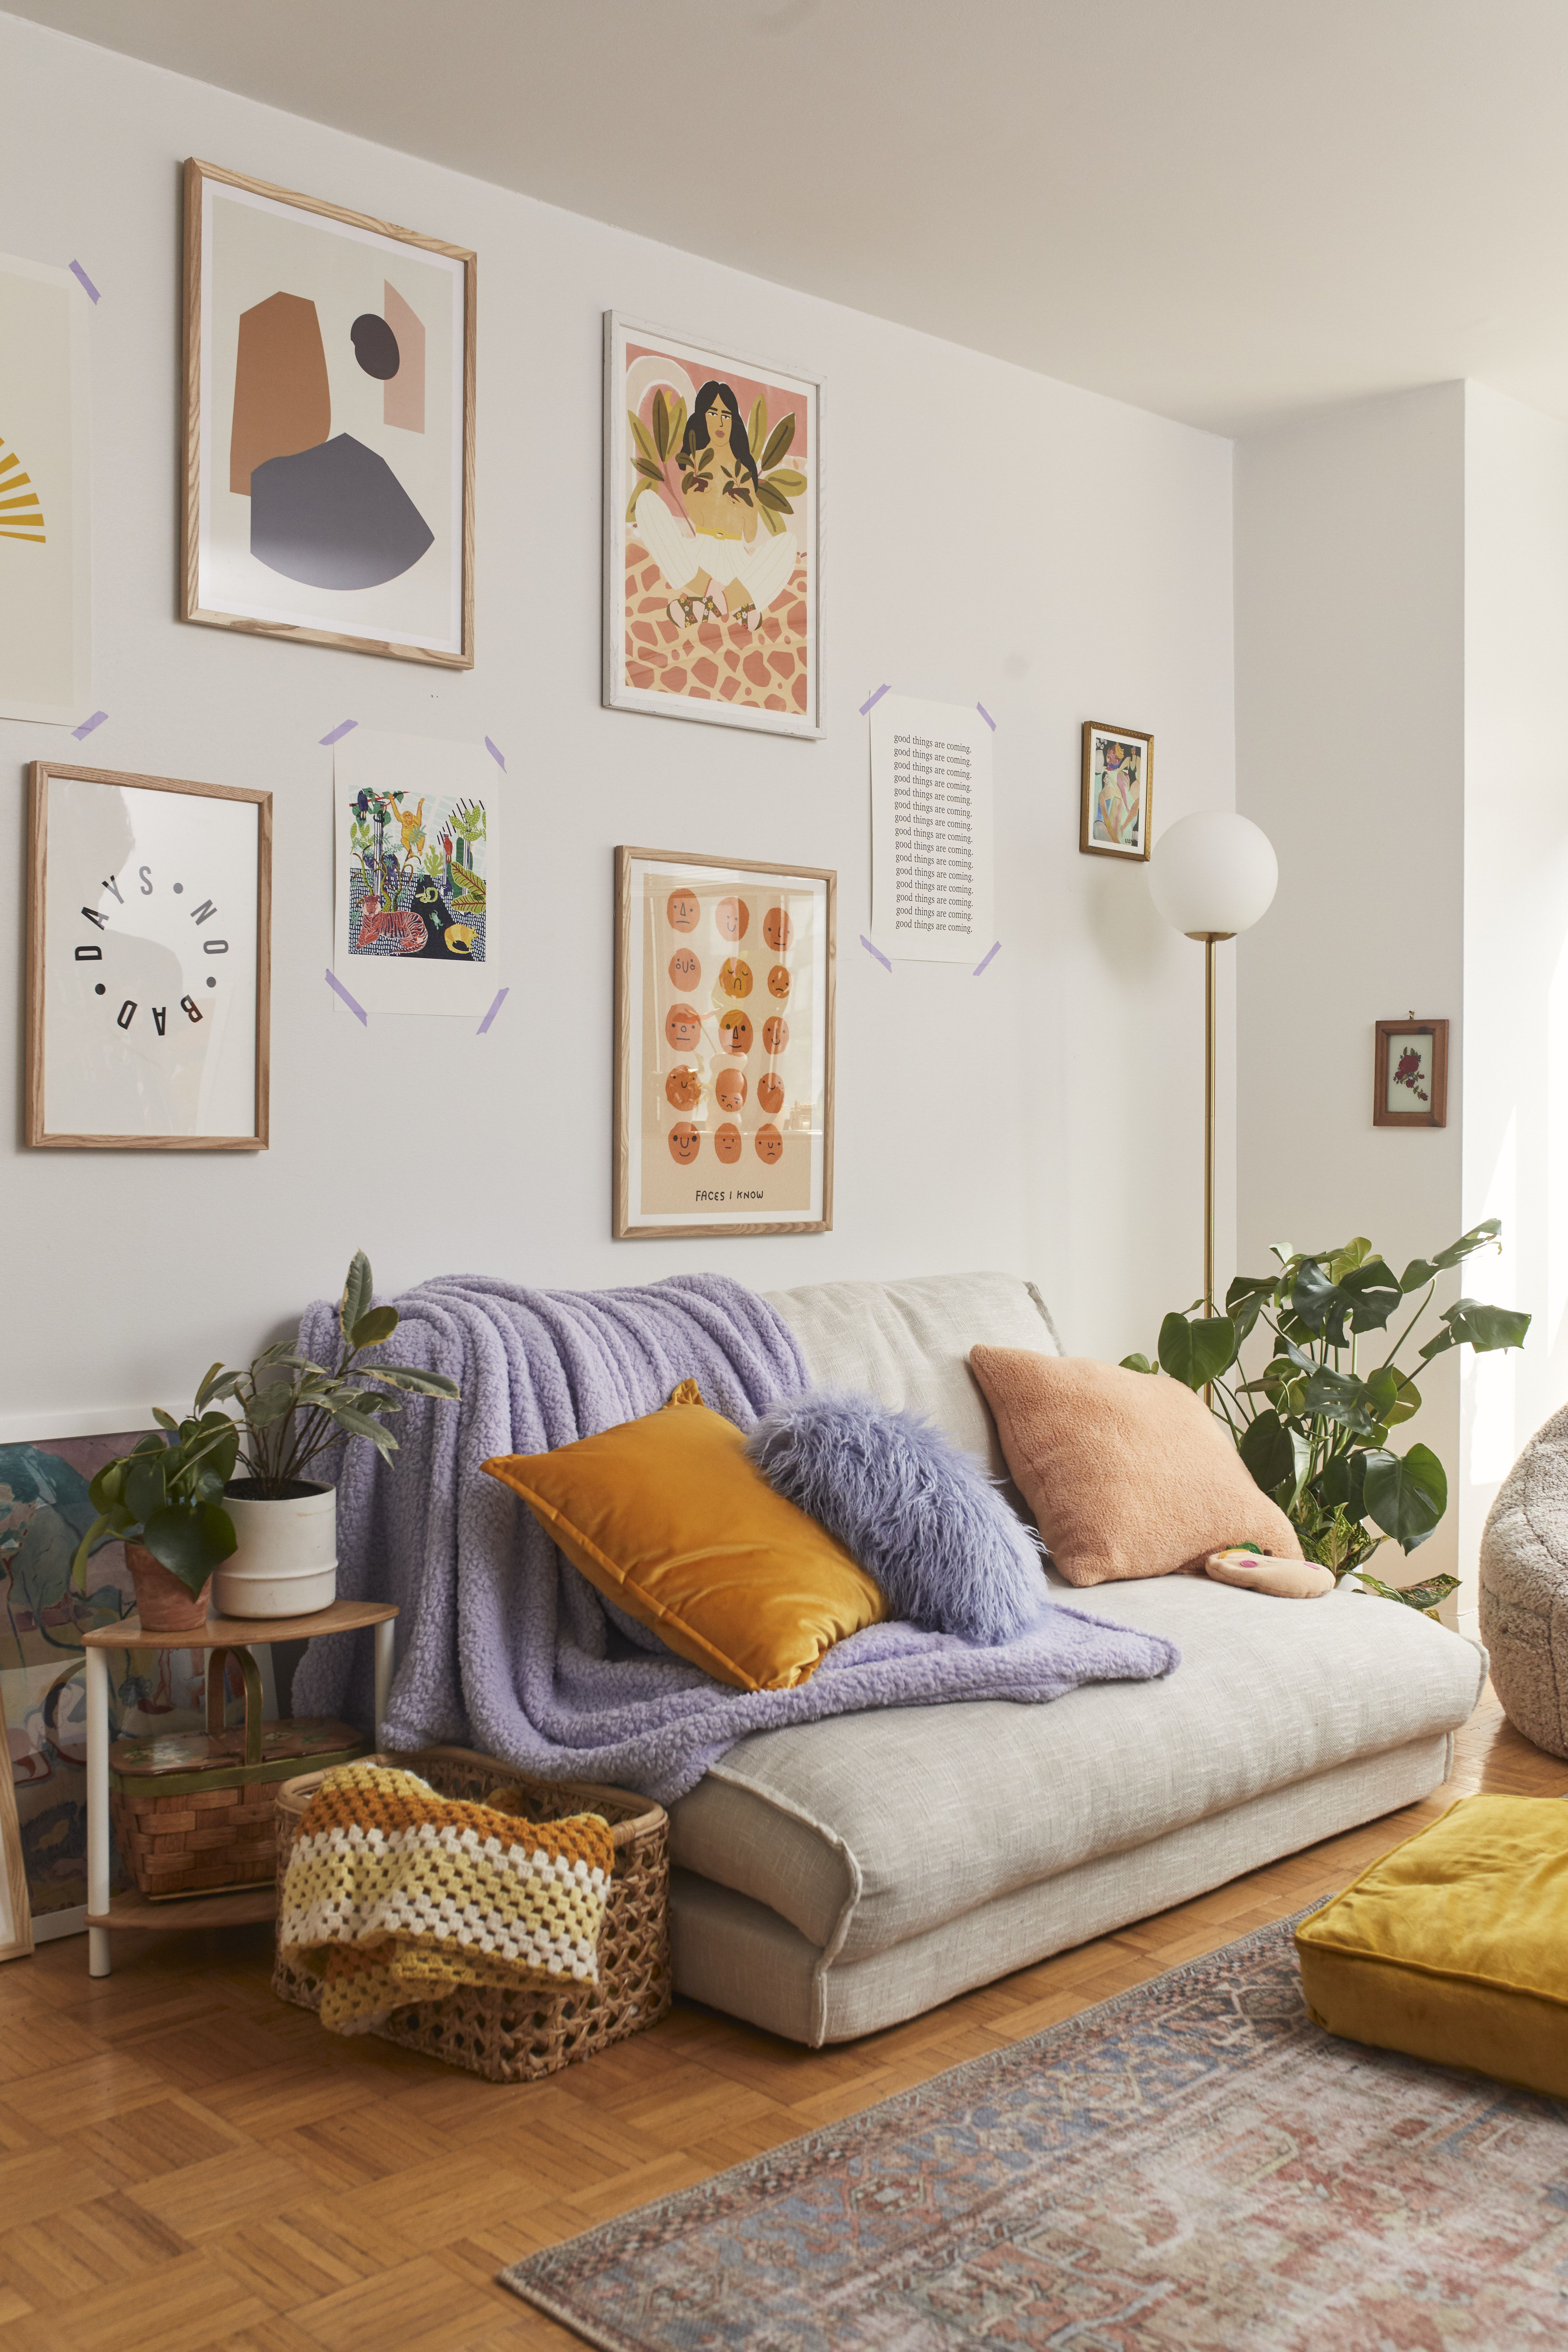 living room, wooden floor, white wall, grey foldable sofa, yellow ottoman, side table, white bulb floor lamp